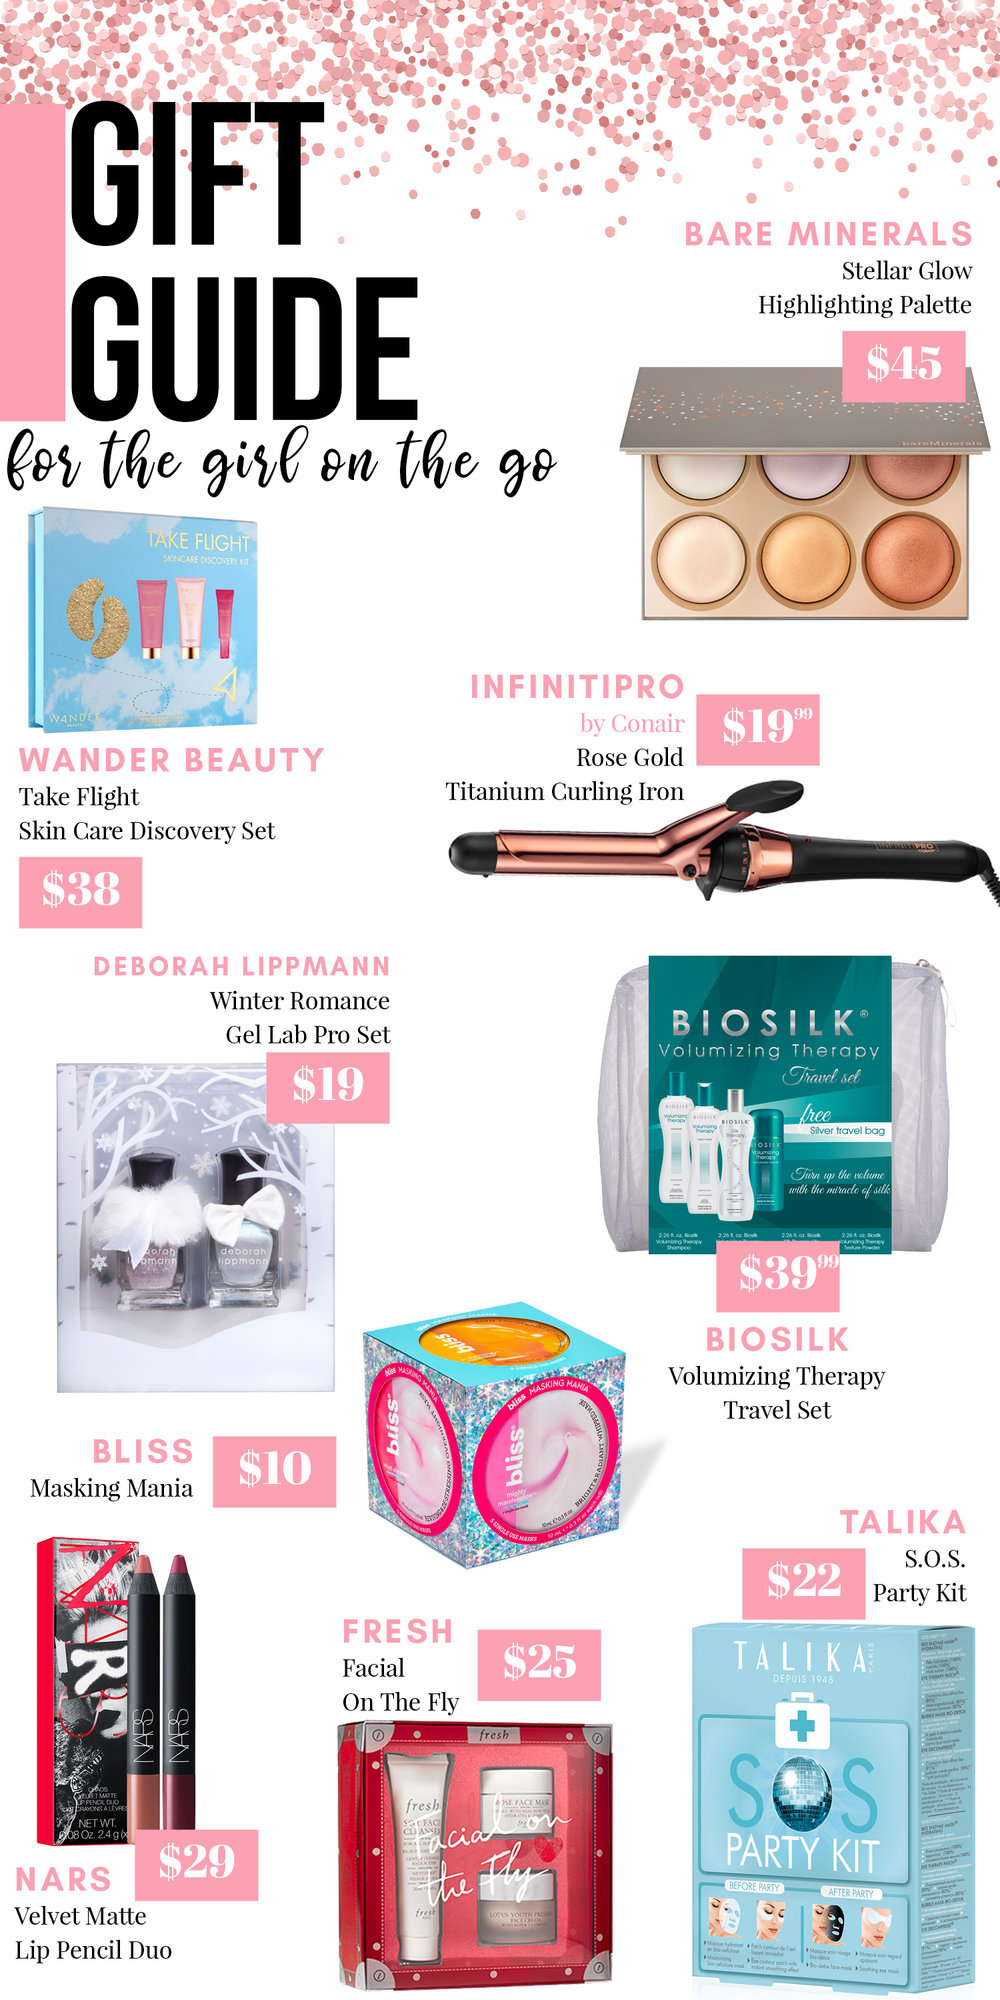 Holiday Gift Guide: Gifts for the Girl on the Go